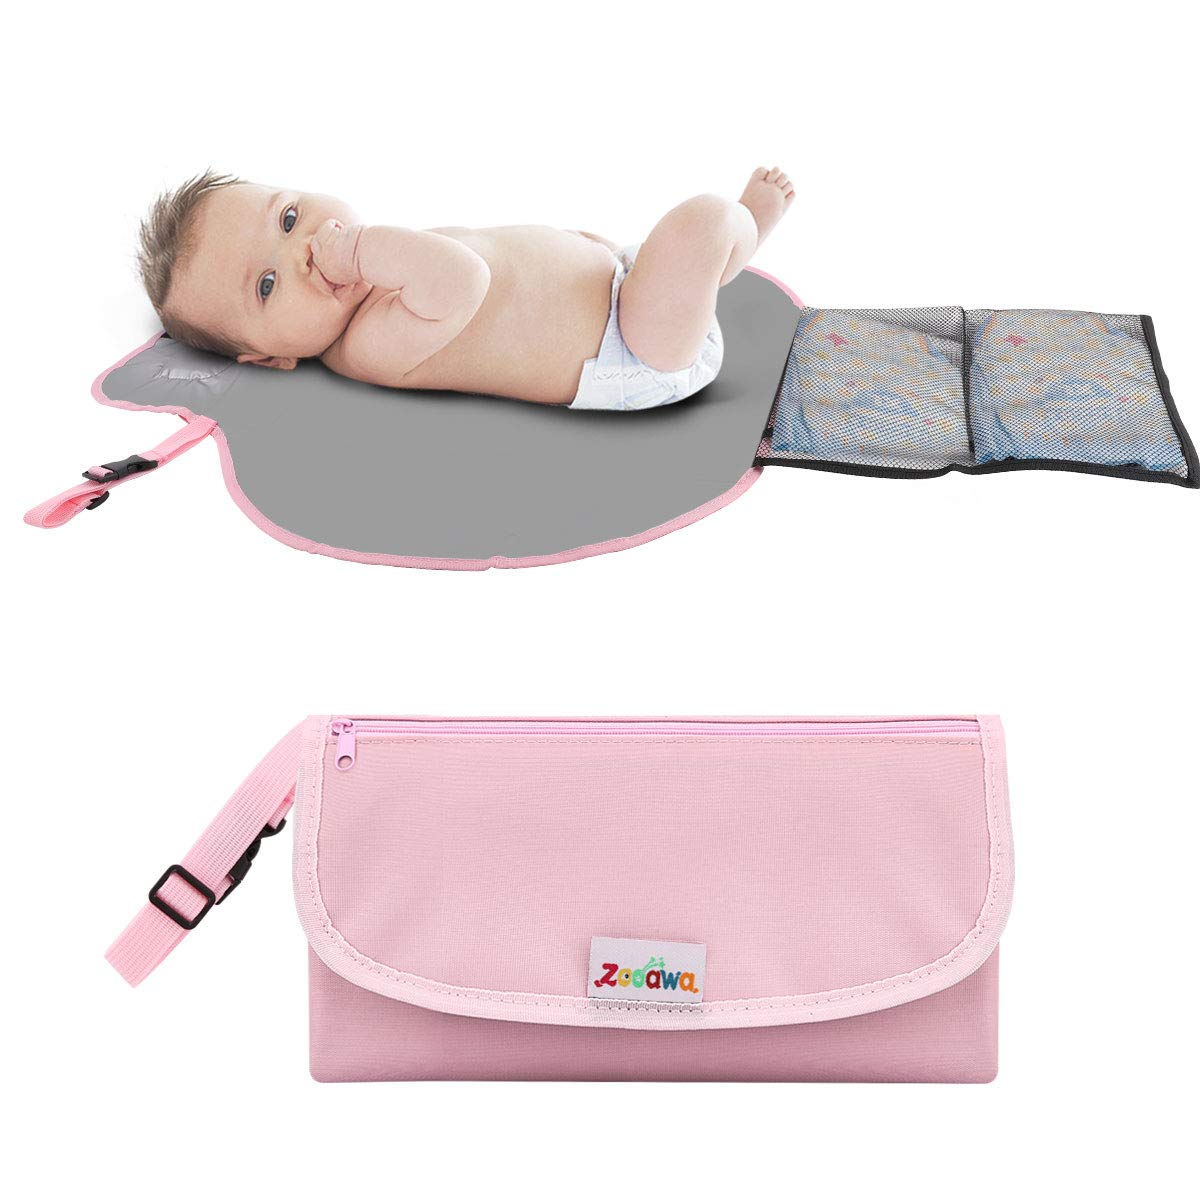 Zooawa Portable Diaper Changing Pad Mat Waterproof Folding Station Clutch Travel Carrying Bag for Baby Infants